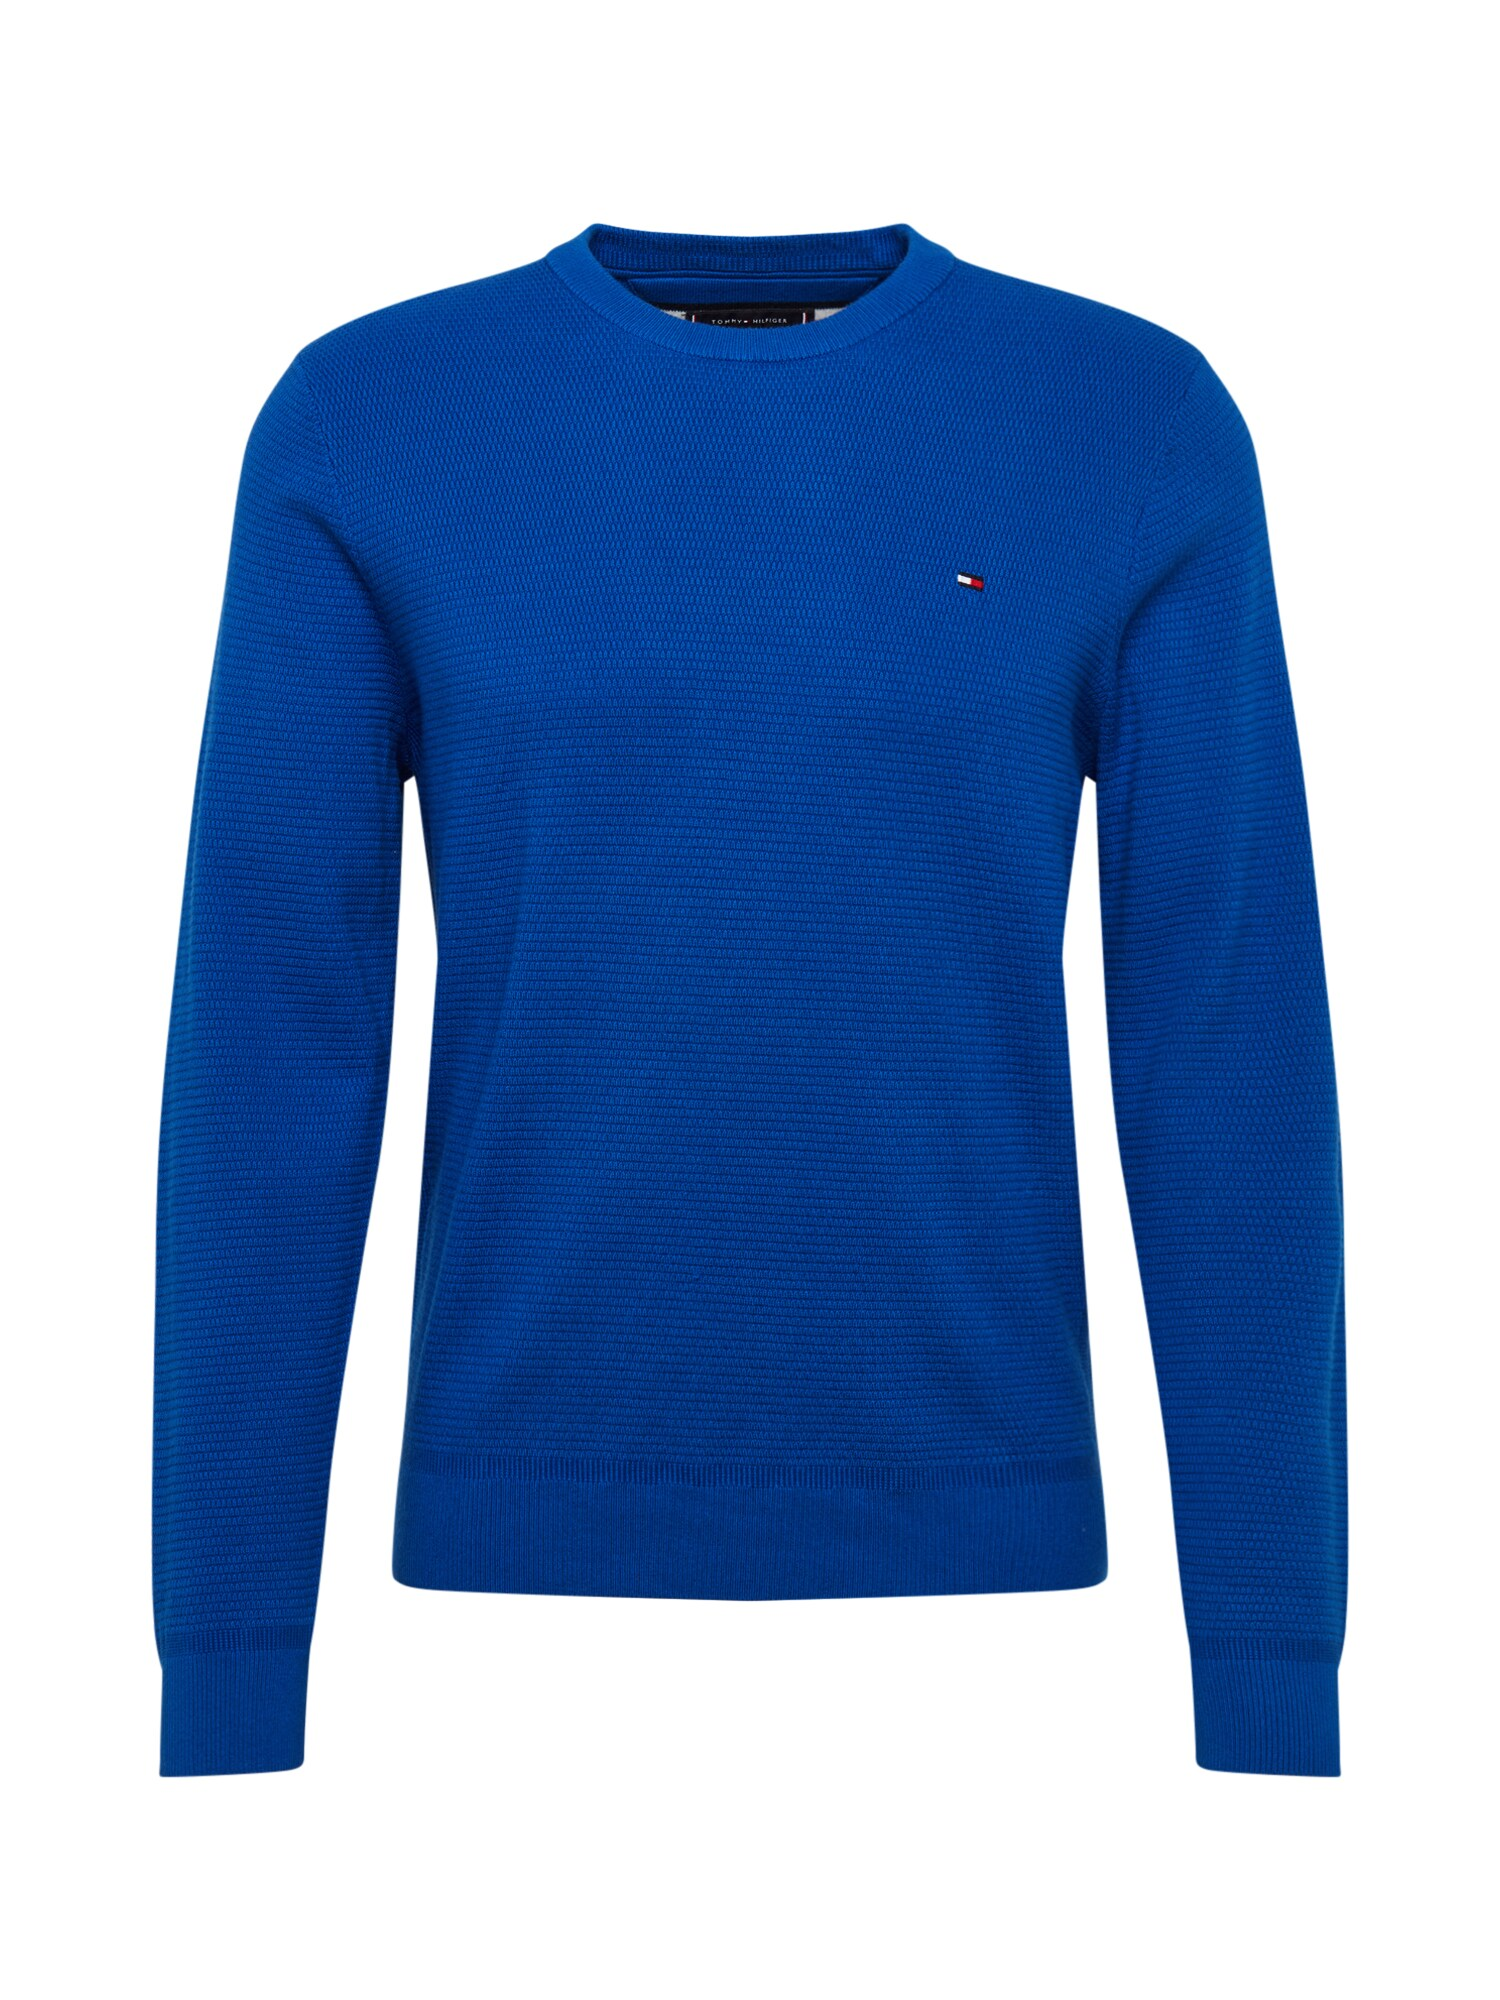 TOMMY HILFIGER Svetr STRUCTURED COTTON CREW NECK kobaltová modř Tommy Hilfiger